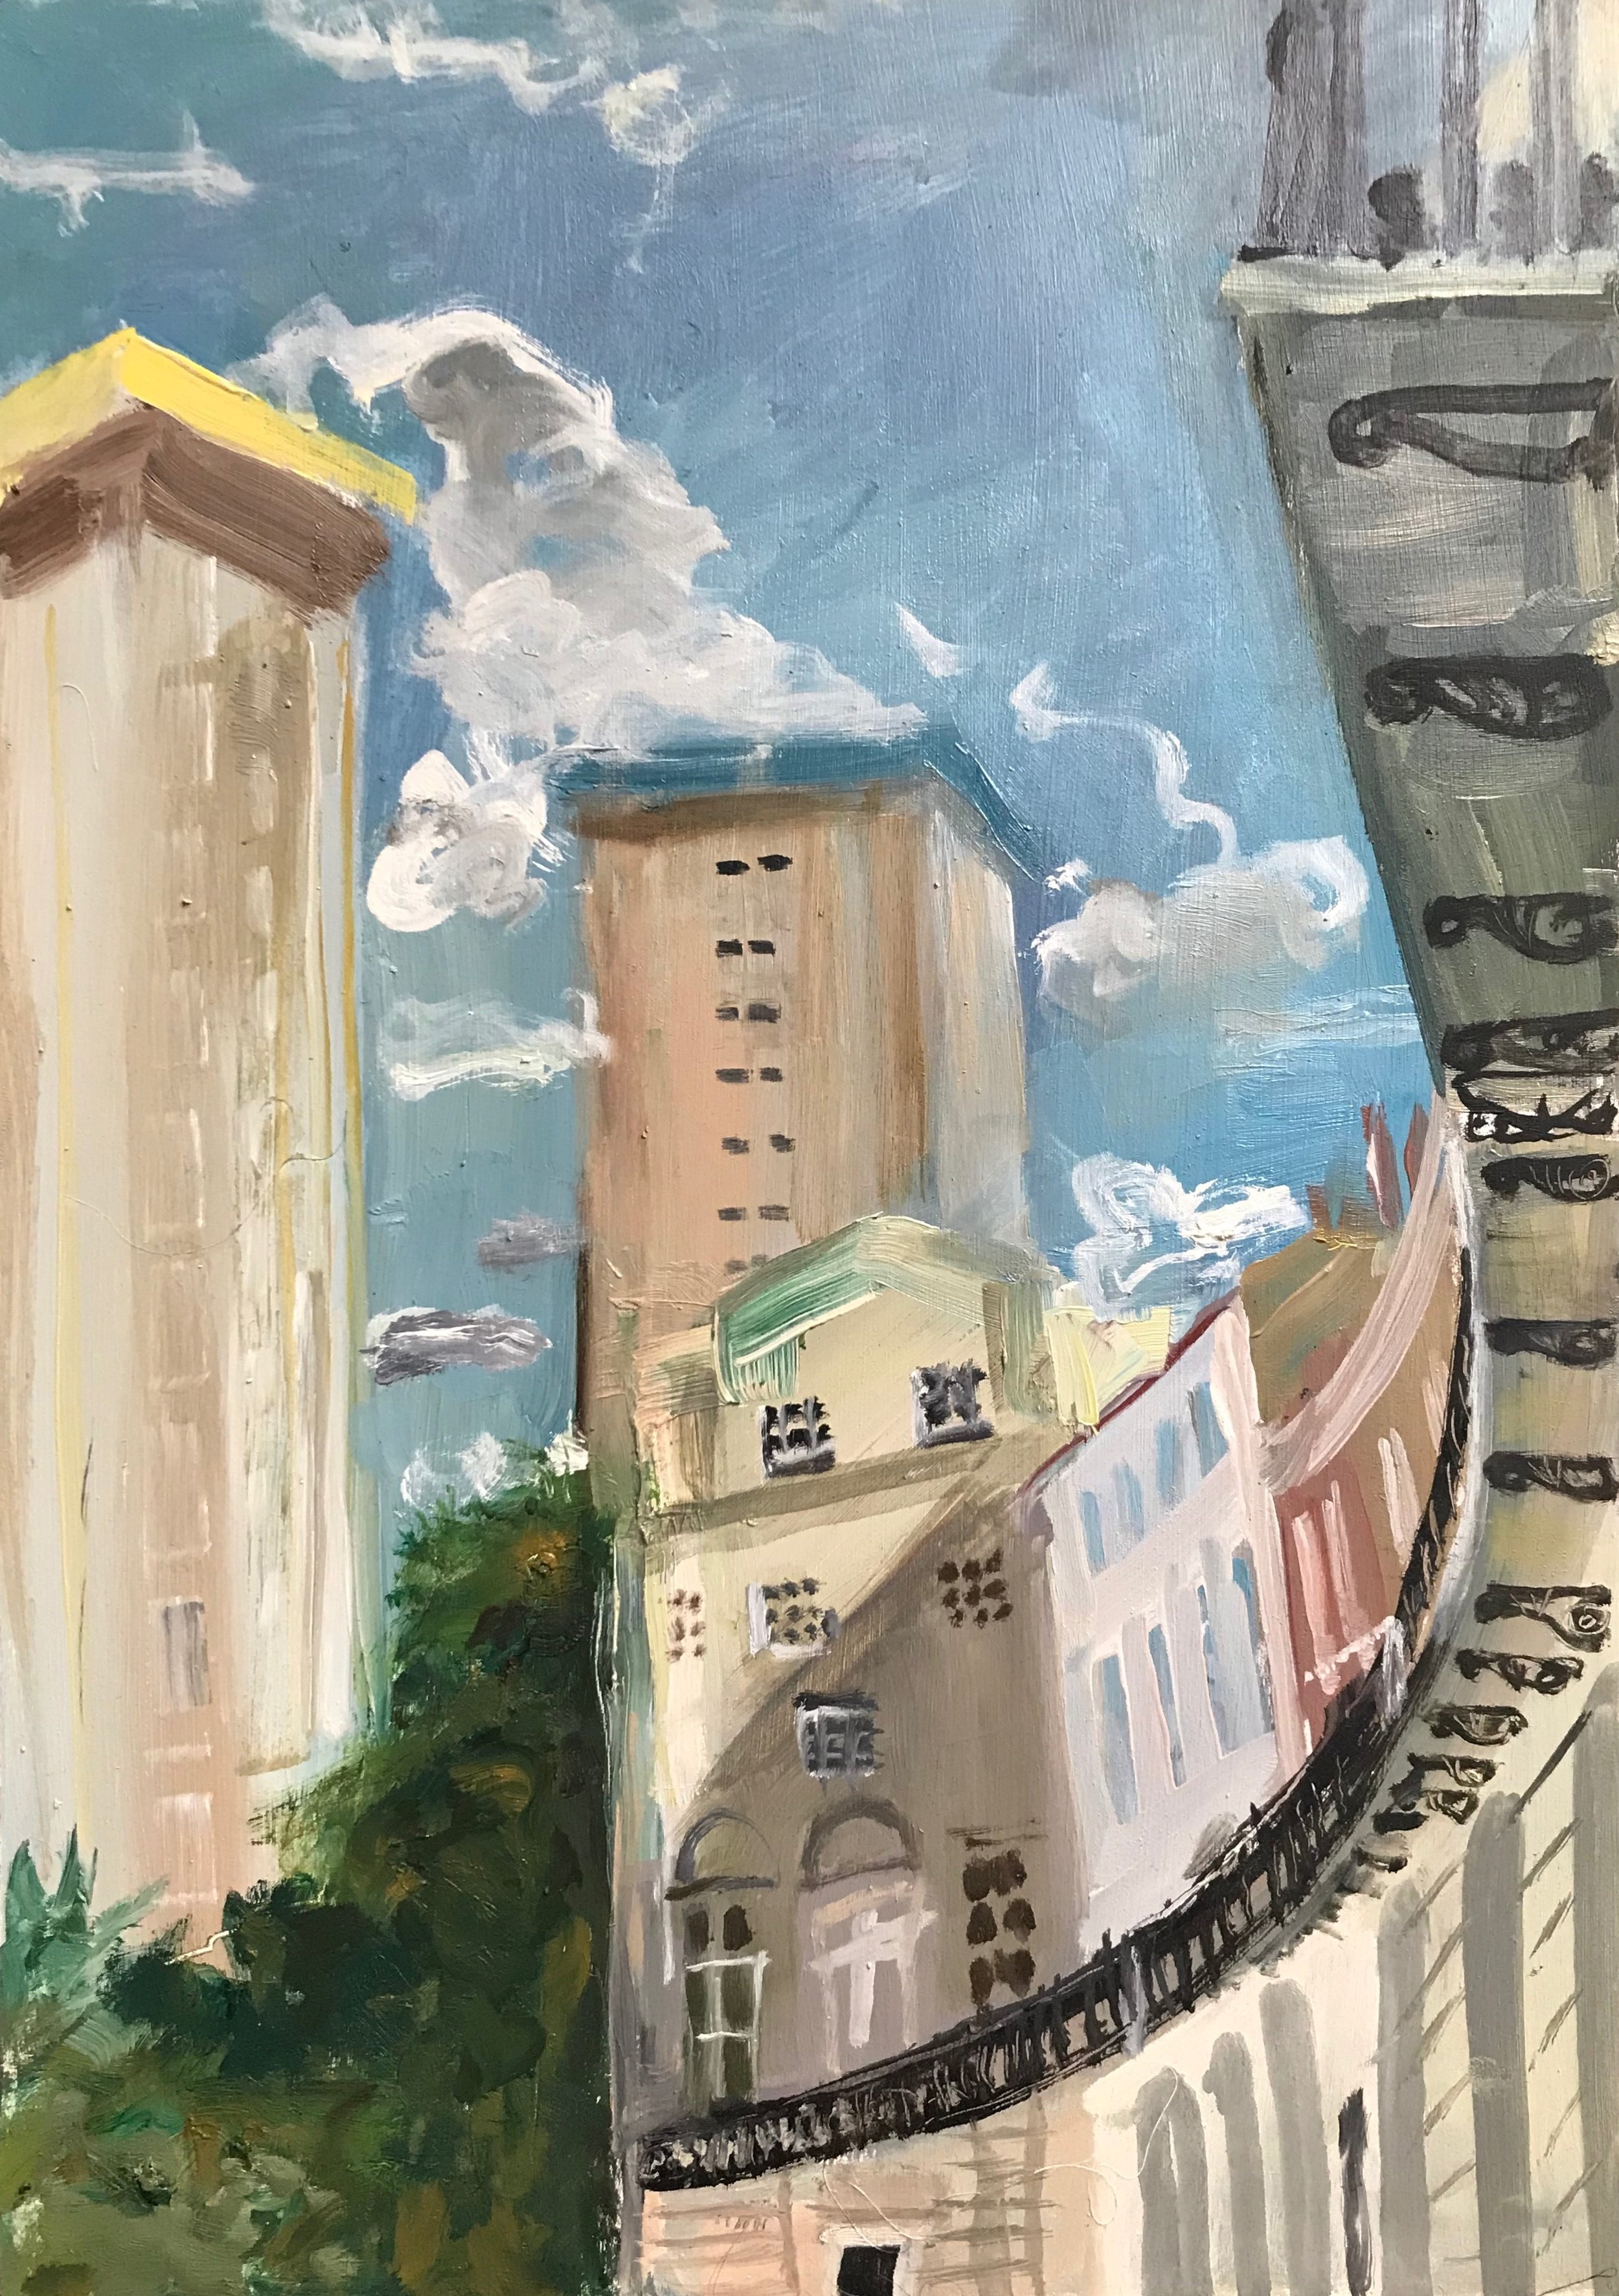 VIEW OF SILVERDALE FROM MORNINGTON CRESCENT  Oil on Wood | 30 x 42 cm | 2018  £300.00